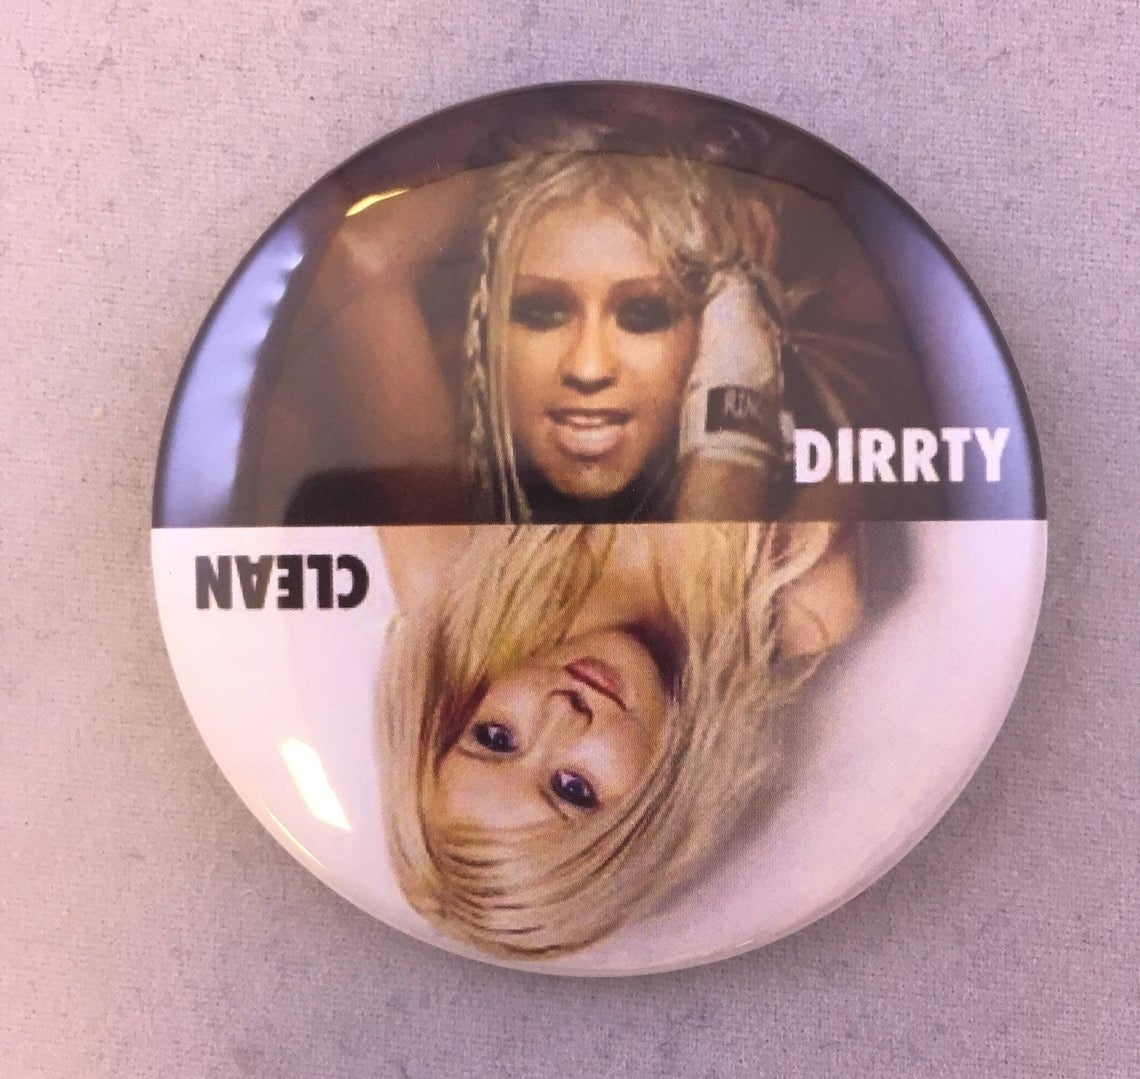 A round magnet with Christina Aguilera from the Dirrty music video on the top and from her Genie In The Bottle days on the bottom.